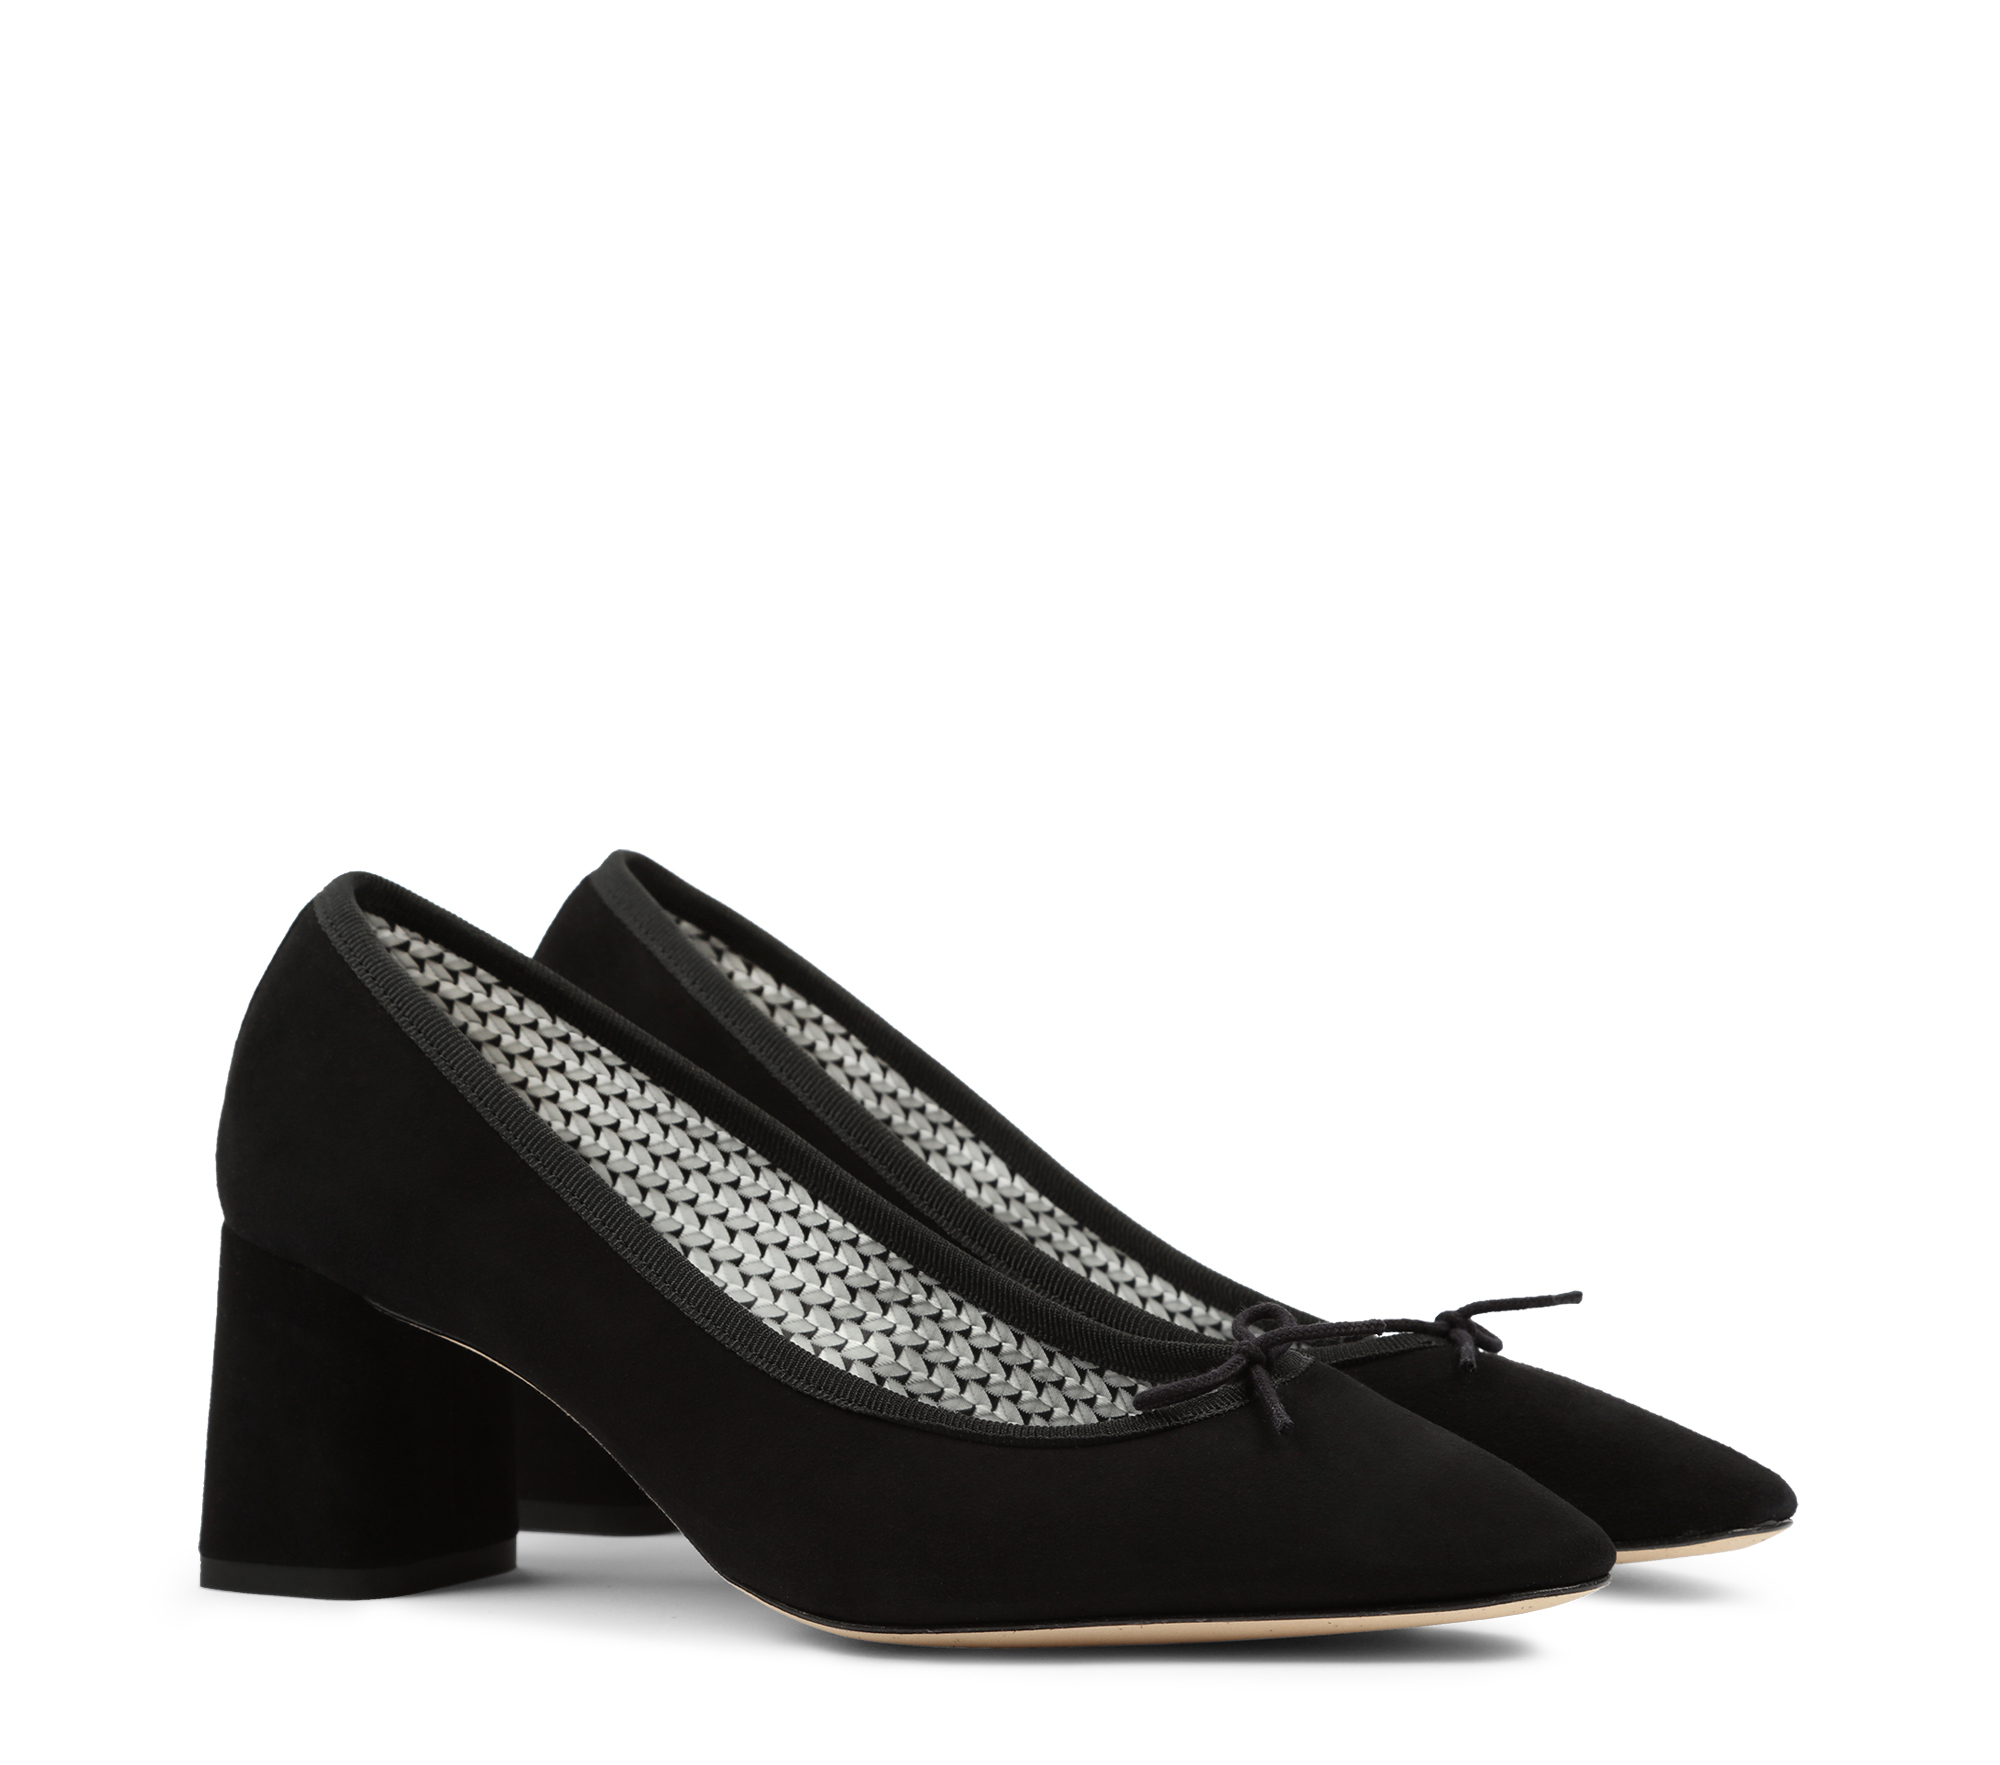 Nastasia pumps